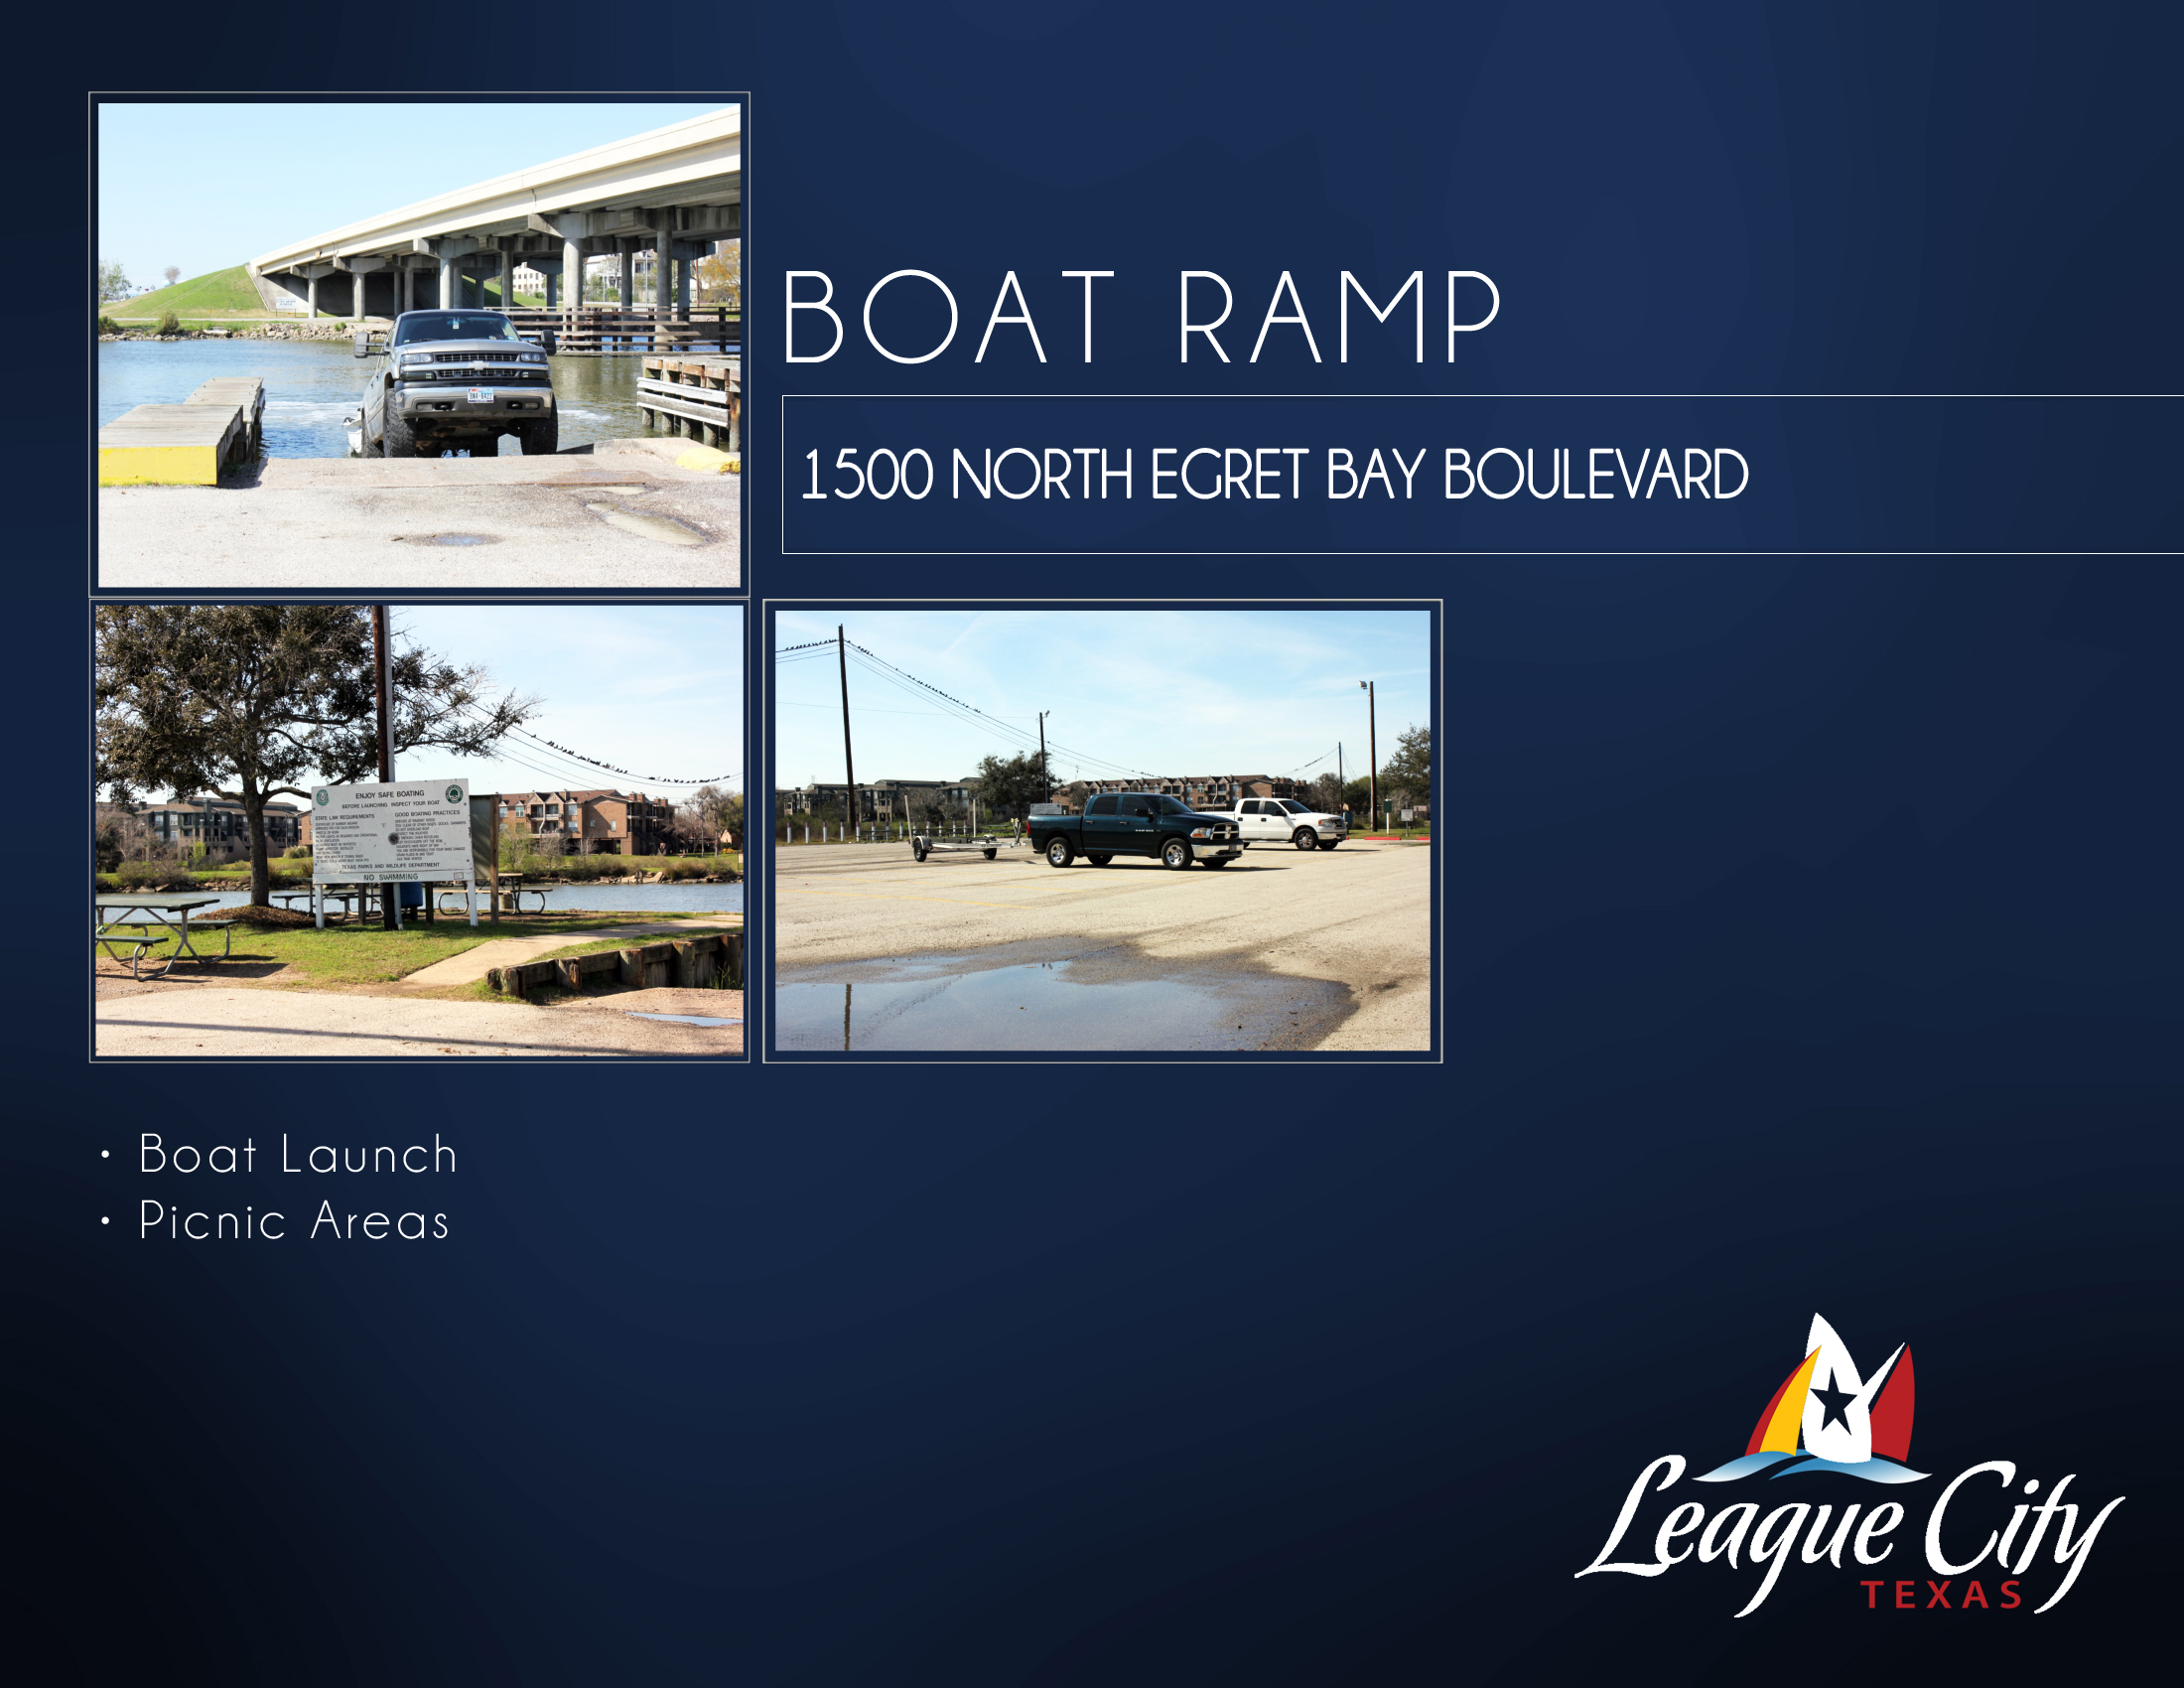 boatramp copy.jpg